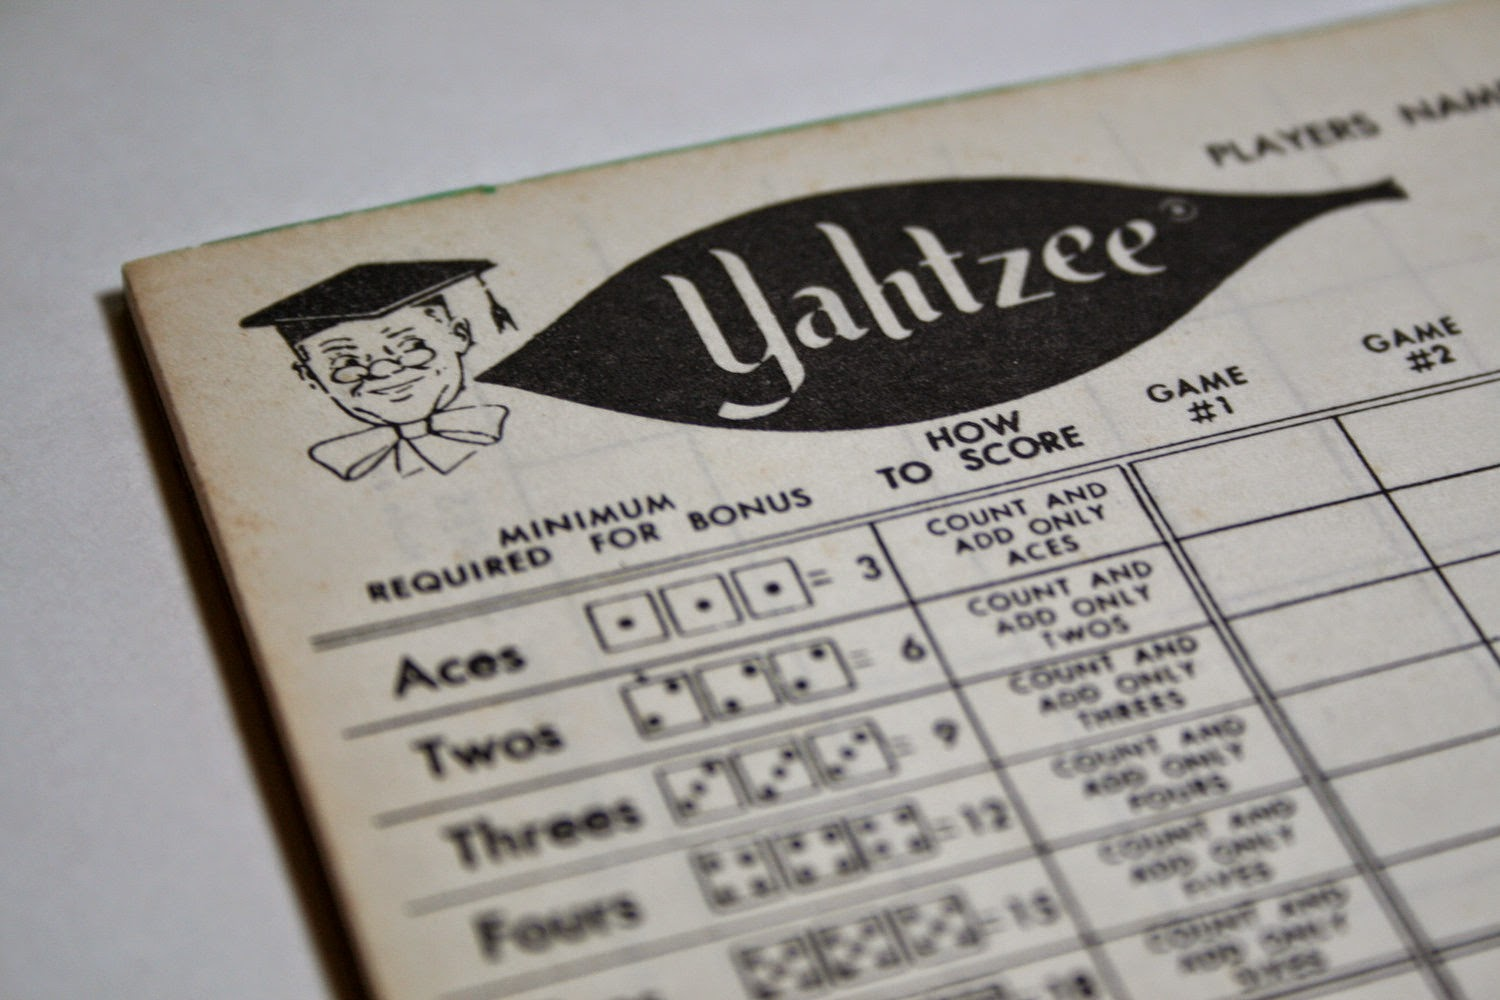 photograph regarding Printable Yahtzee Score Sheets Pdf referred to as Yahtzee On the net: Printable Yahtzee Ranking Sheet